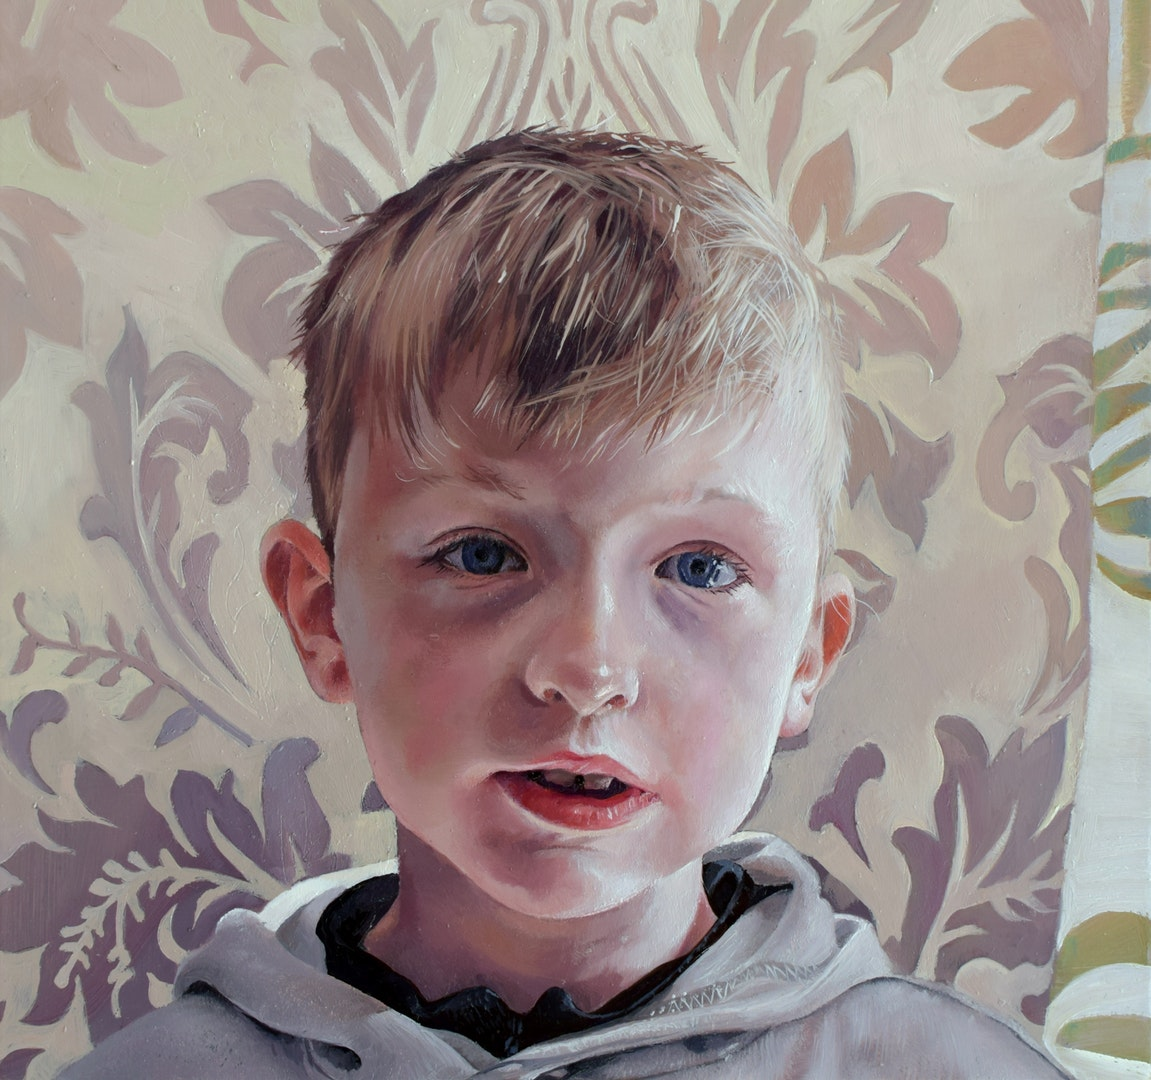 'This Is Me', Catherine MacDiarmid, Oil on board, 20 x 20 x 2 cm